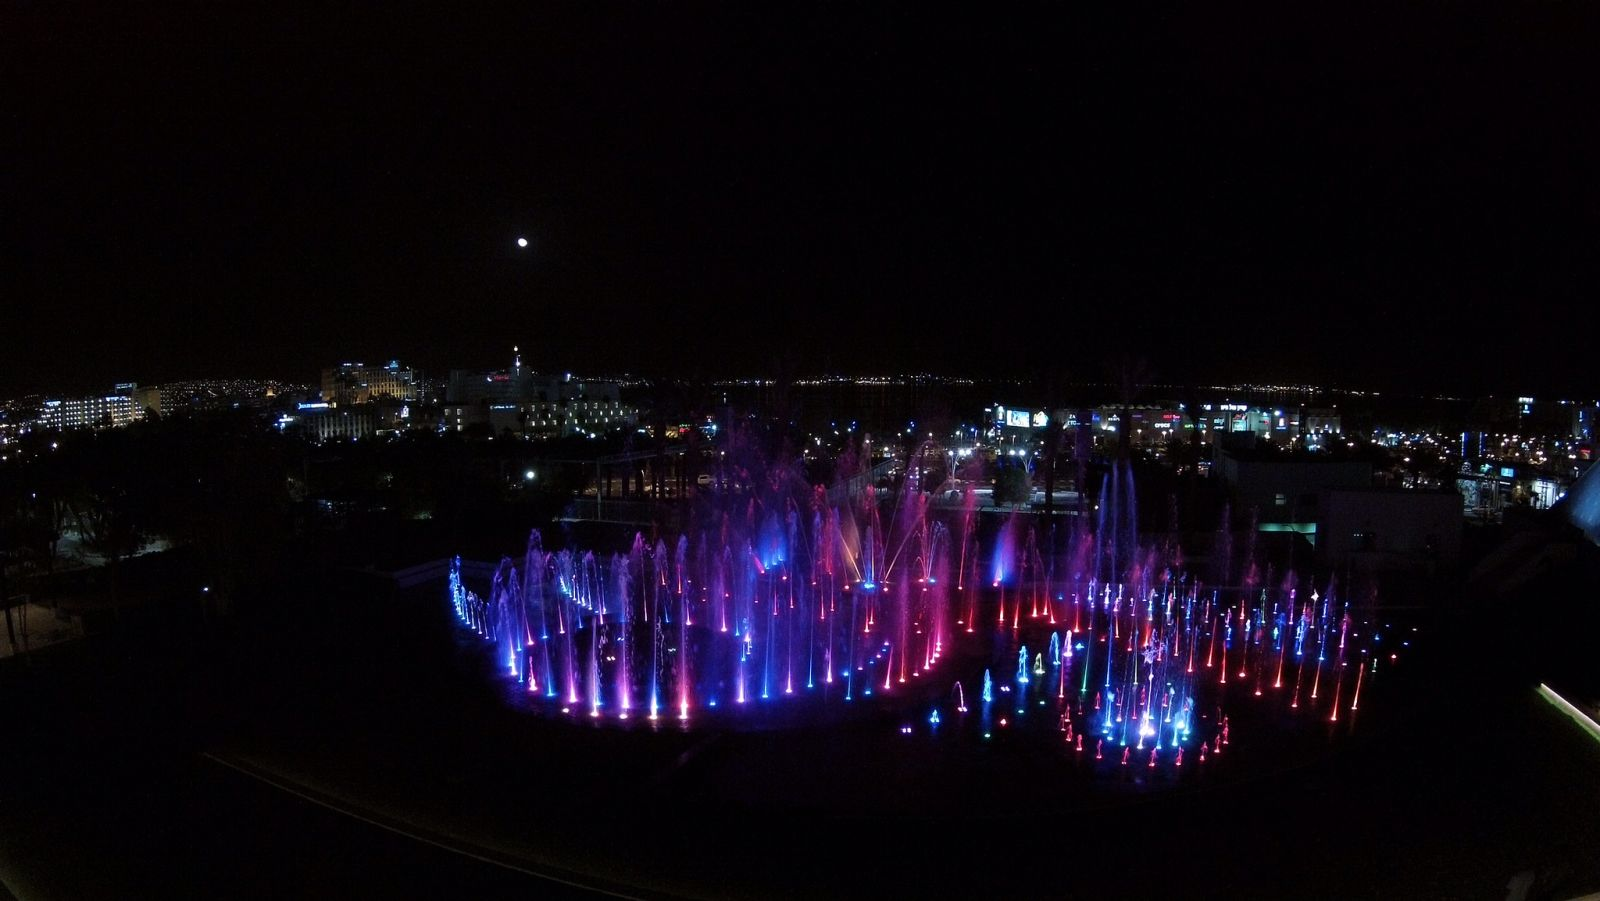 Eilat's new Musical Fountain. Photo by Eshed Fountains